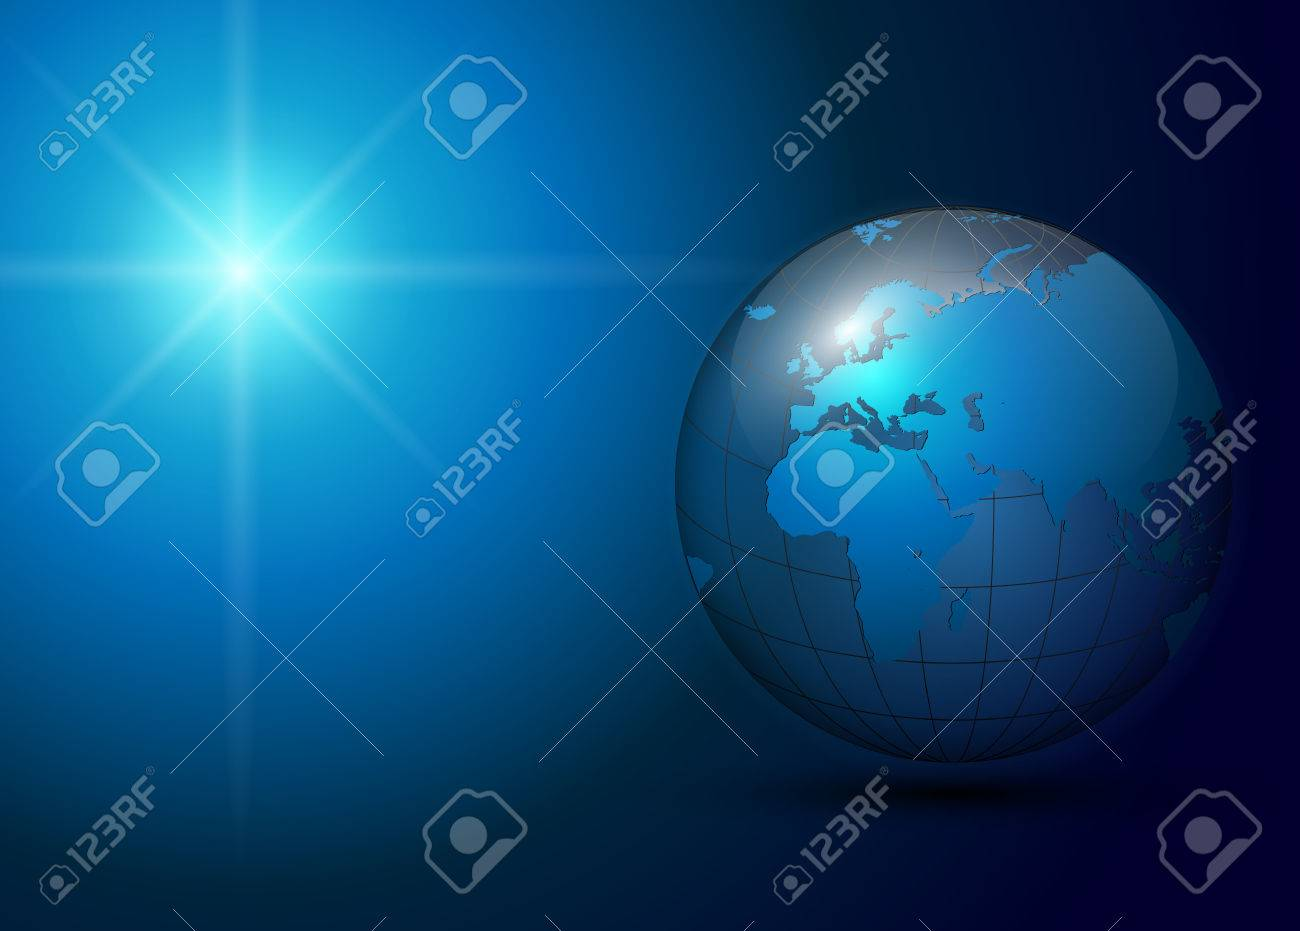 business background blue with earth globe Stock Vector - 7627317